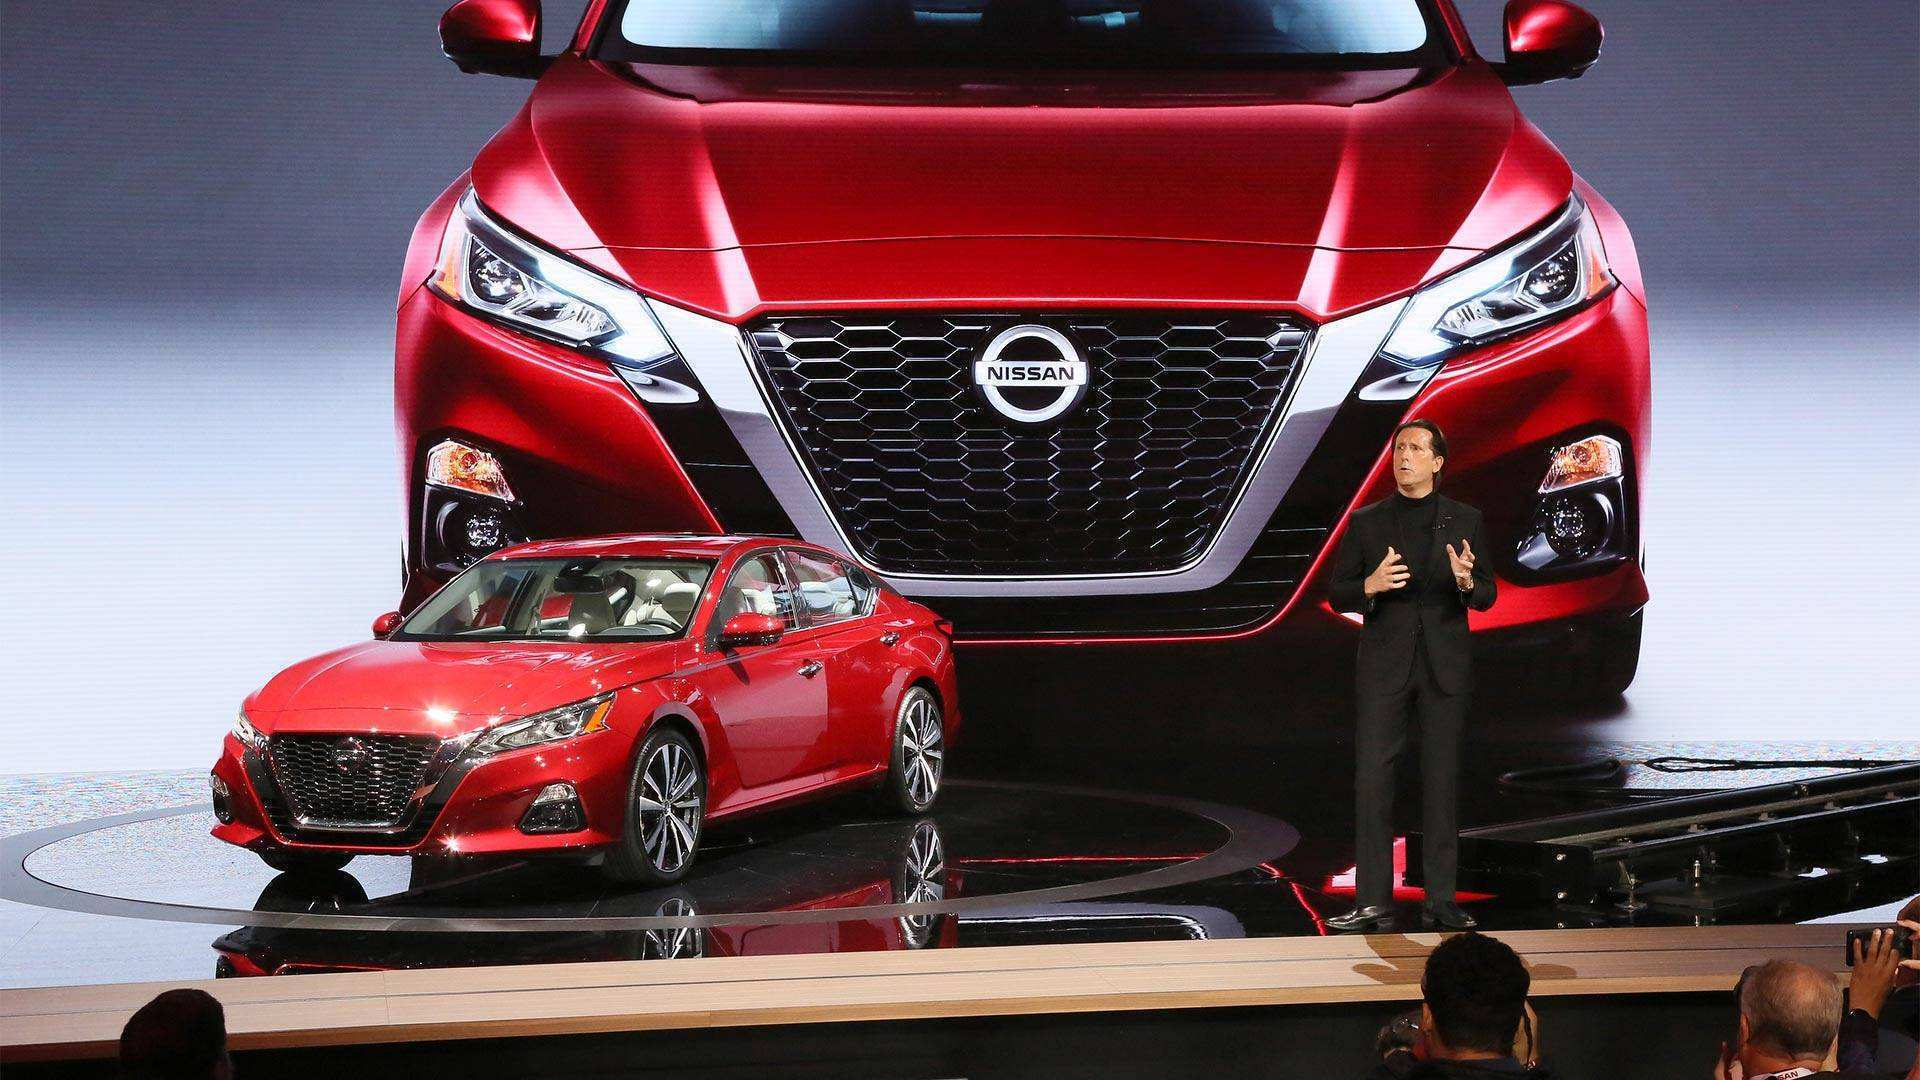 96 Great 2020 Nissan Sentra Research New for 2020 Nissan Sentra